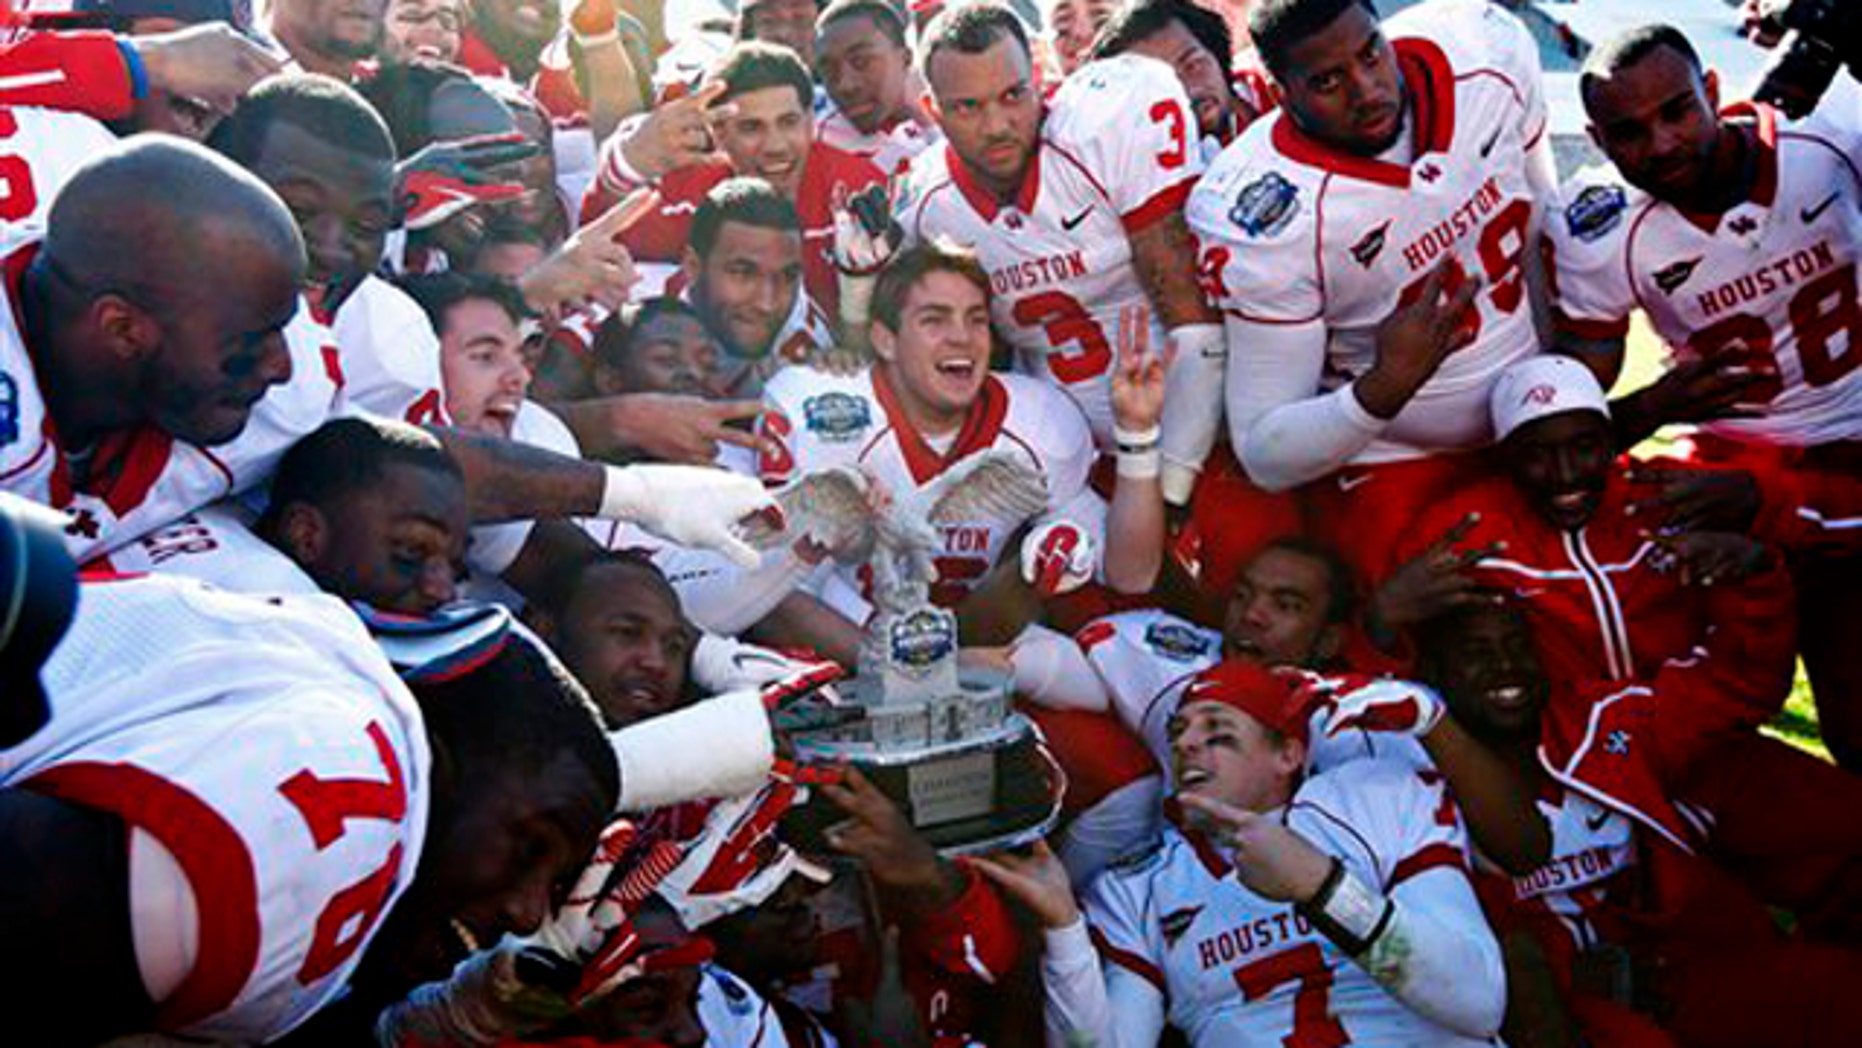 Houston players celebrate with the championship trophy after defeating Penn State in the TicketCity Bowl NCAA college football game, Monday, Jan. 2, 2012, at the Cotton Bowl in Dallas.